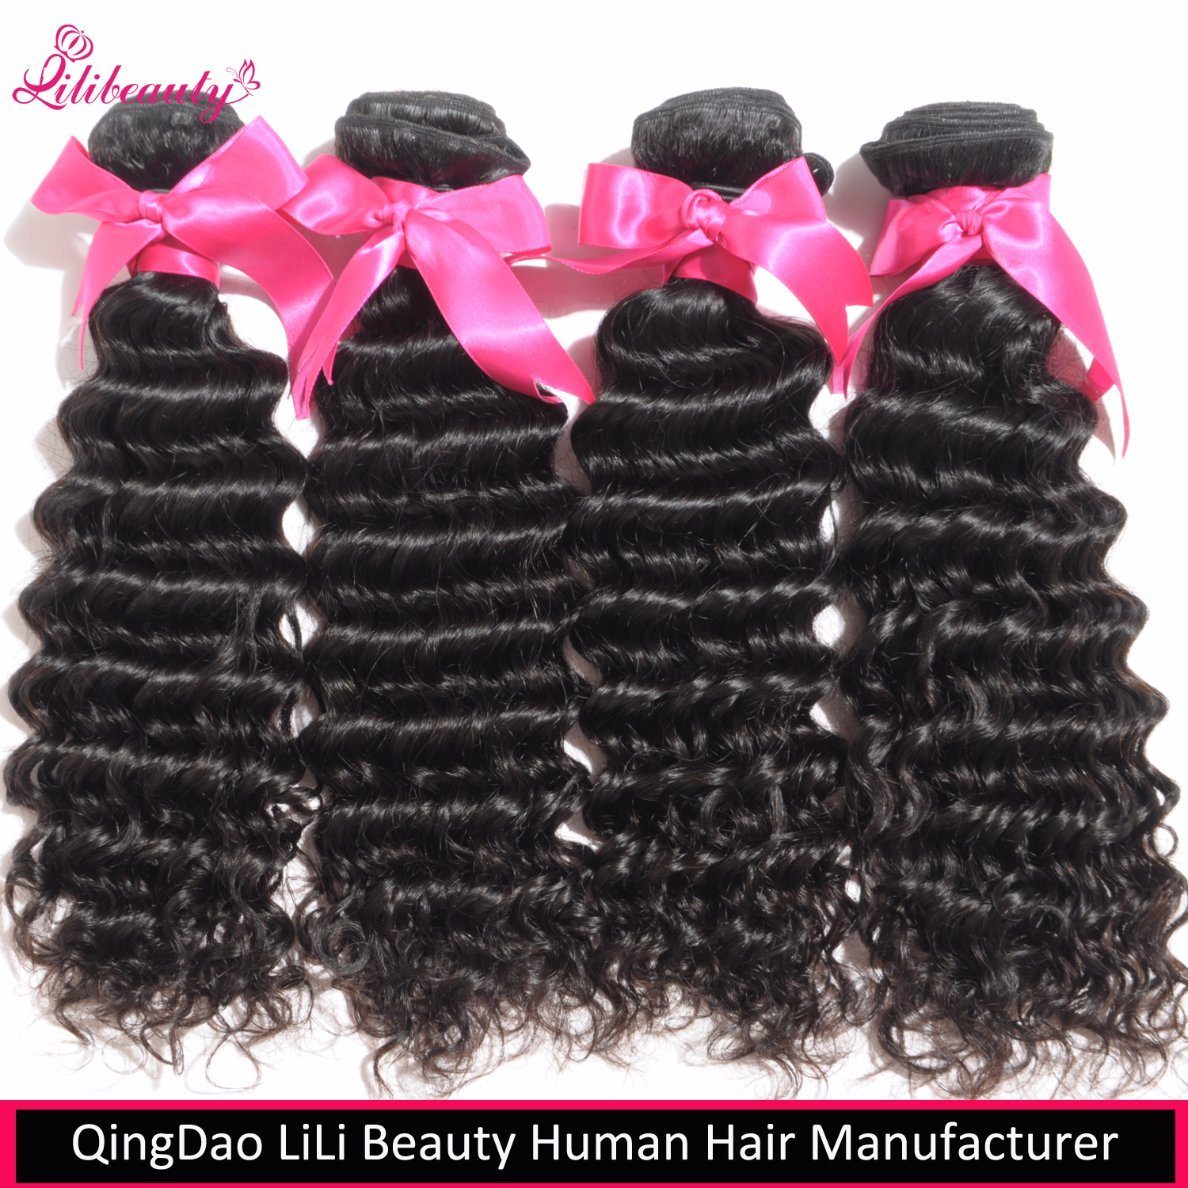 Wholesale Virgin Brazilian Hair One Donor Human Hair pictures & photos